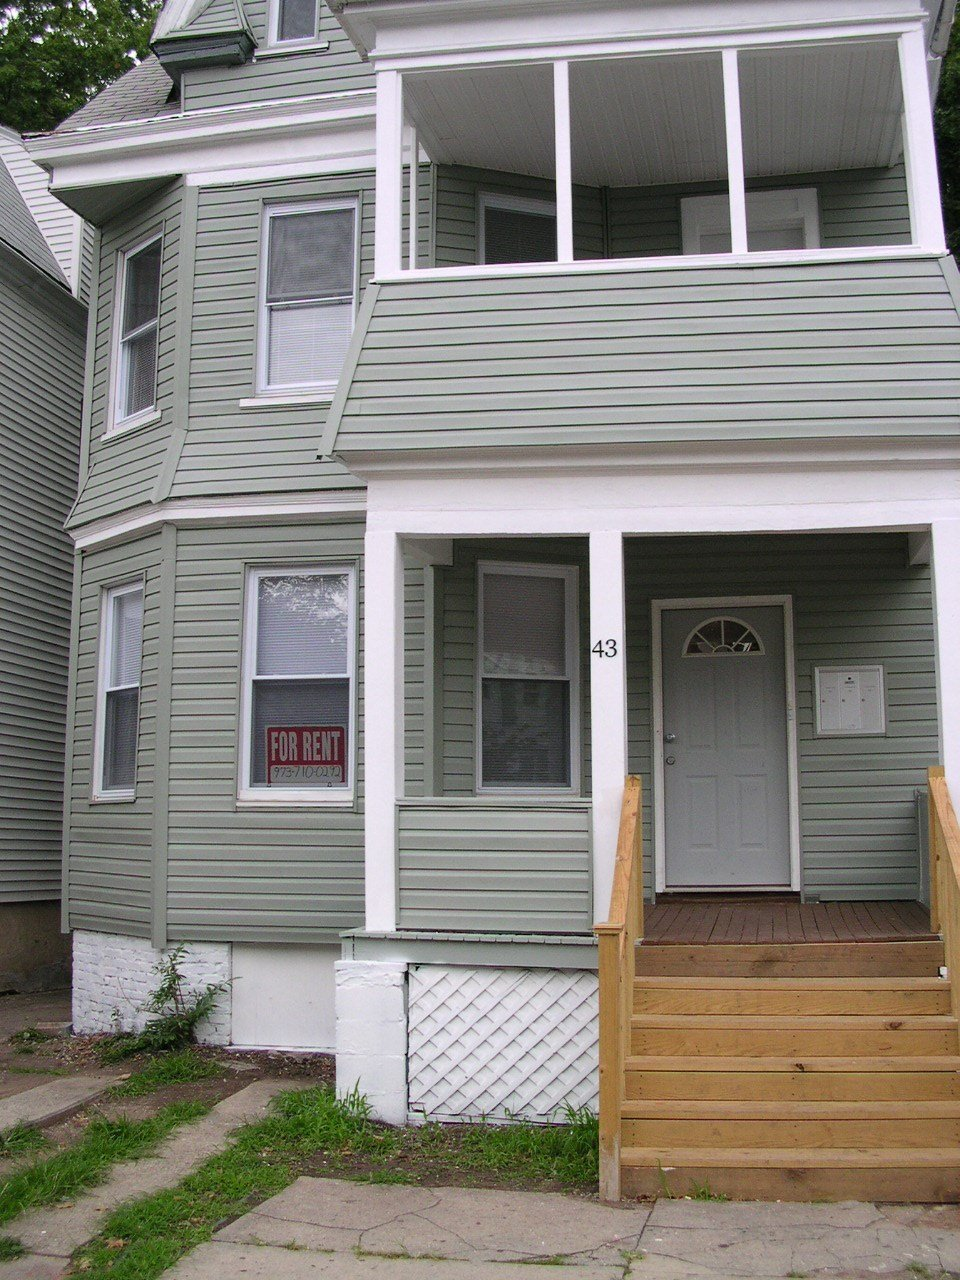 Best Section 8 Housing And Apartments For Rent In East Orange With Pictures